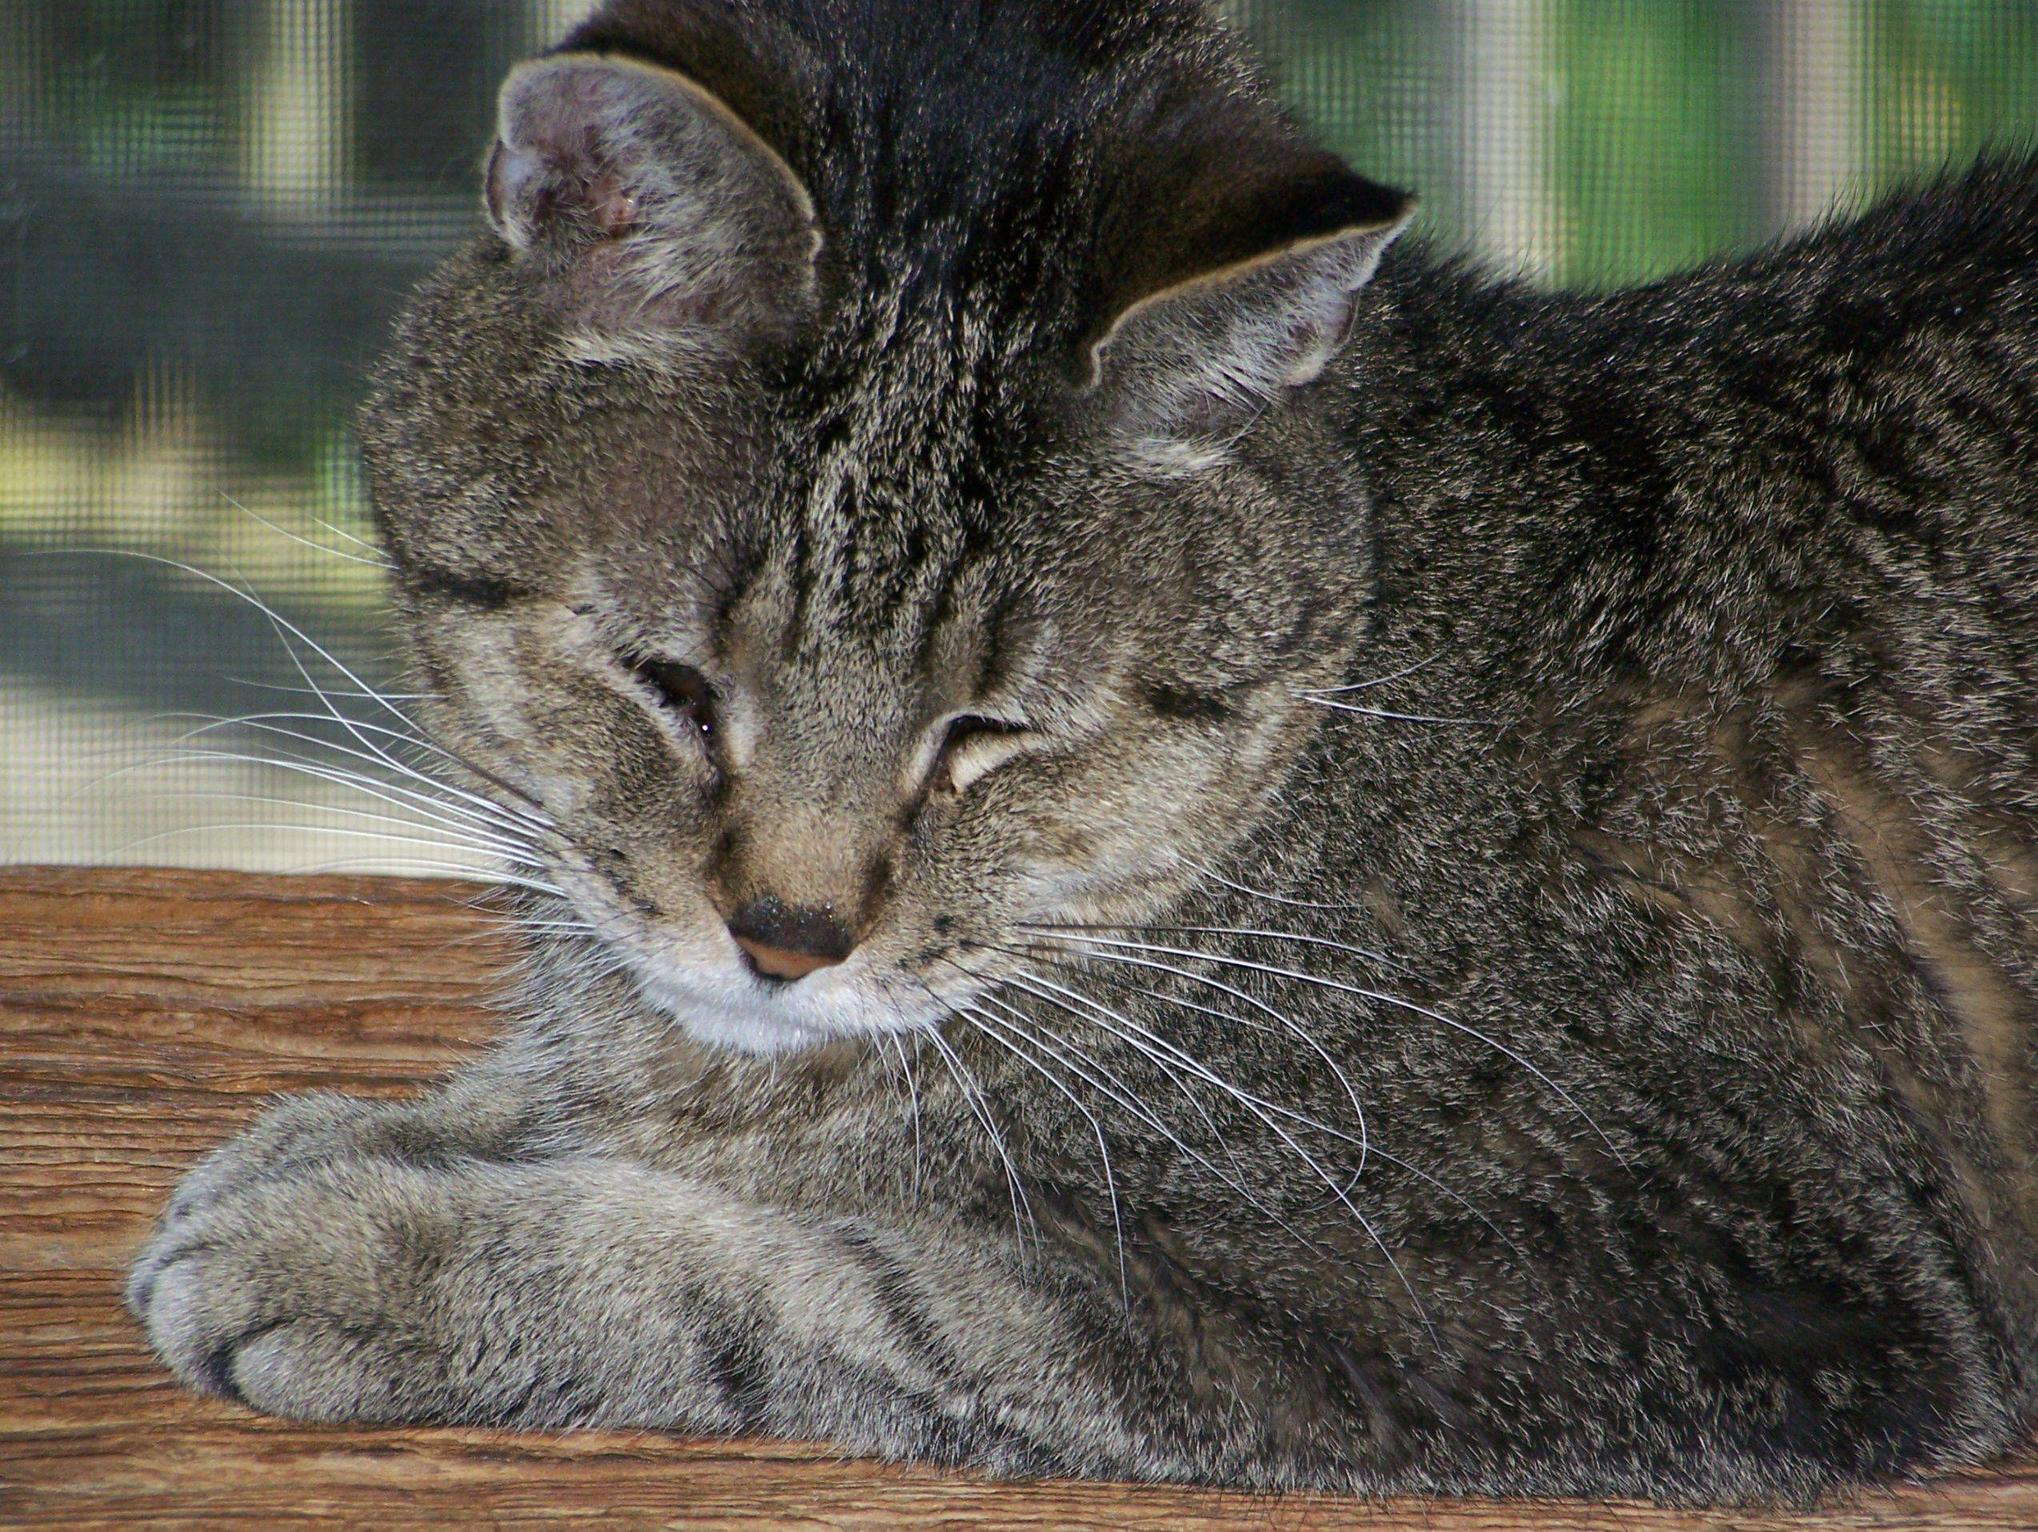 Feline Arthritis A Painful Condition That Can Contribute